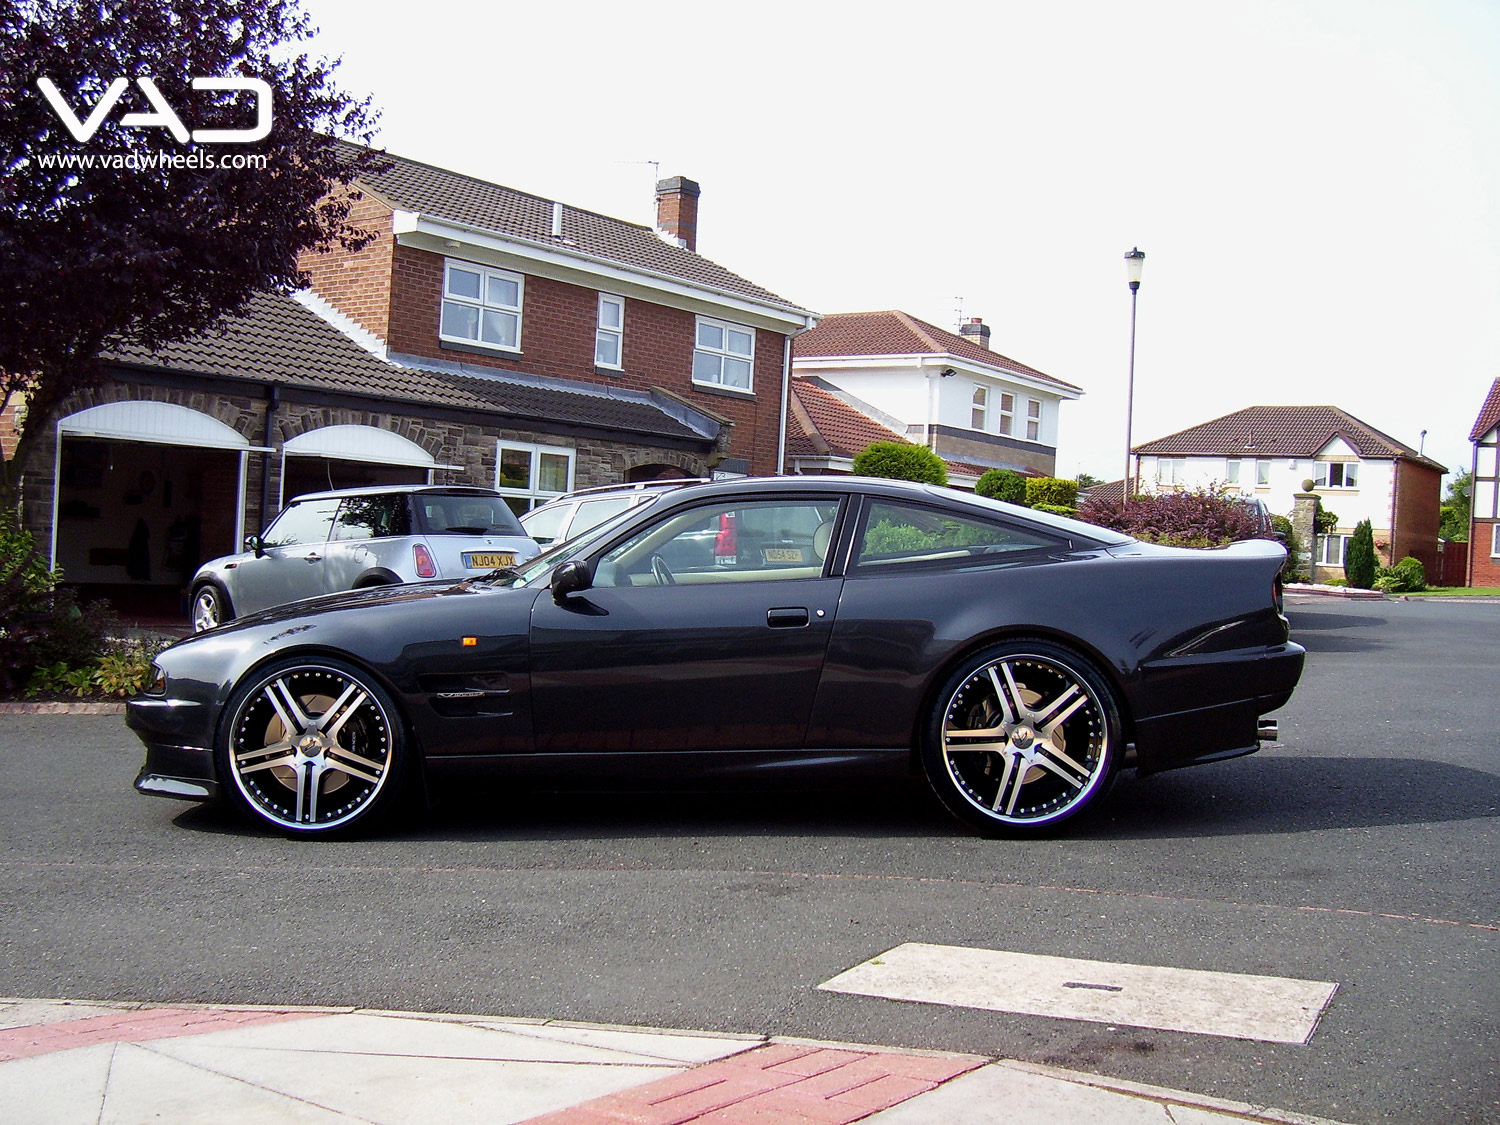 Astom Martin Virage Vantage Fitted With 21'' Alstadt S250